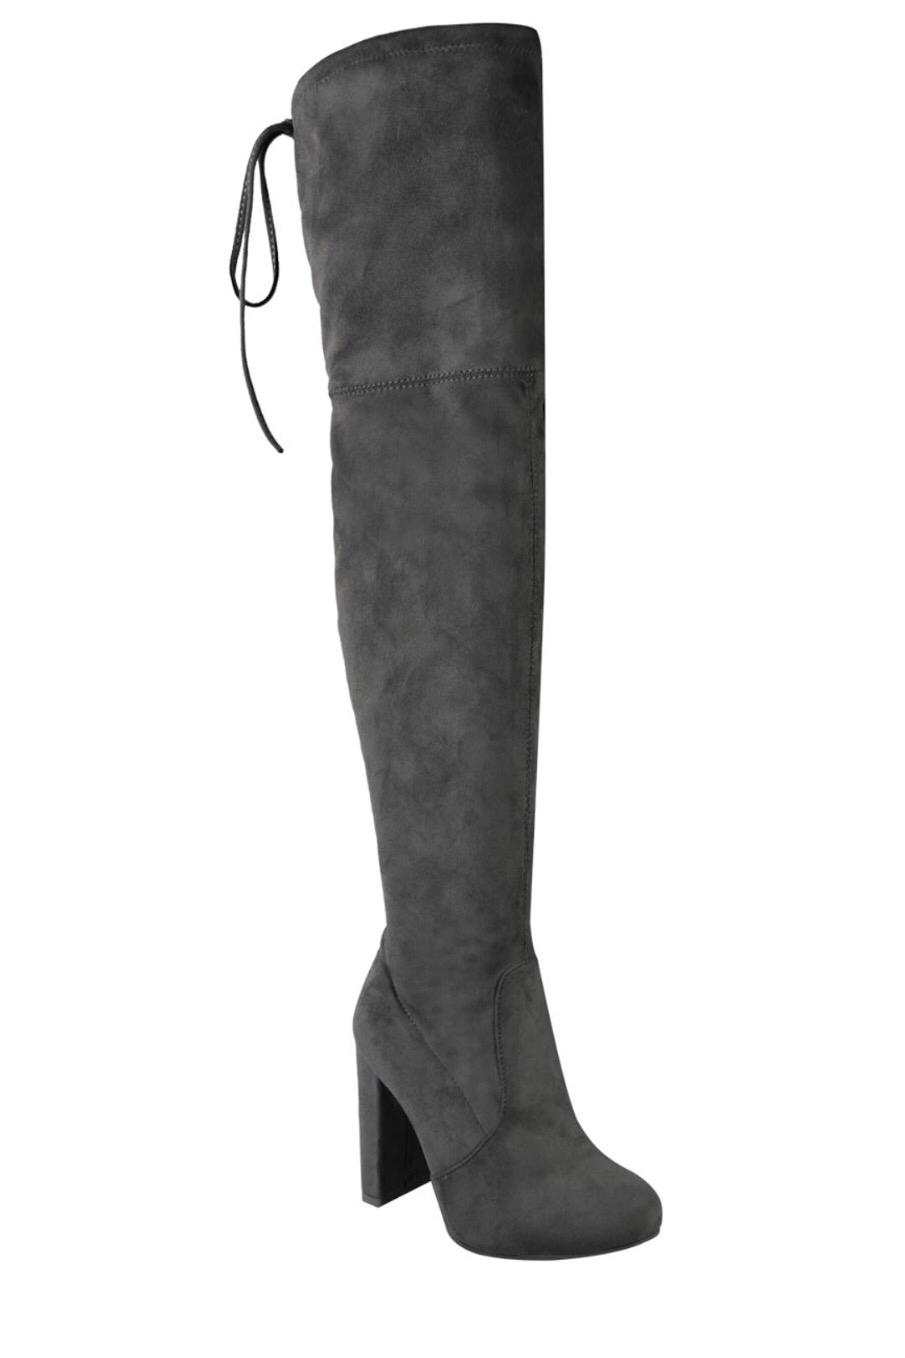 Khaleesi Thigh High Boots- Grey - Hapa Clothing